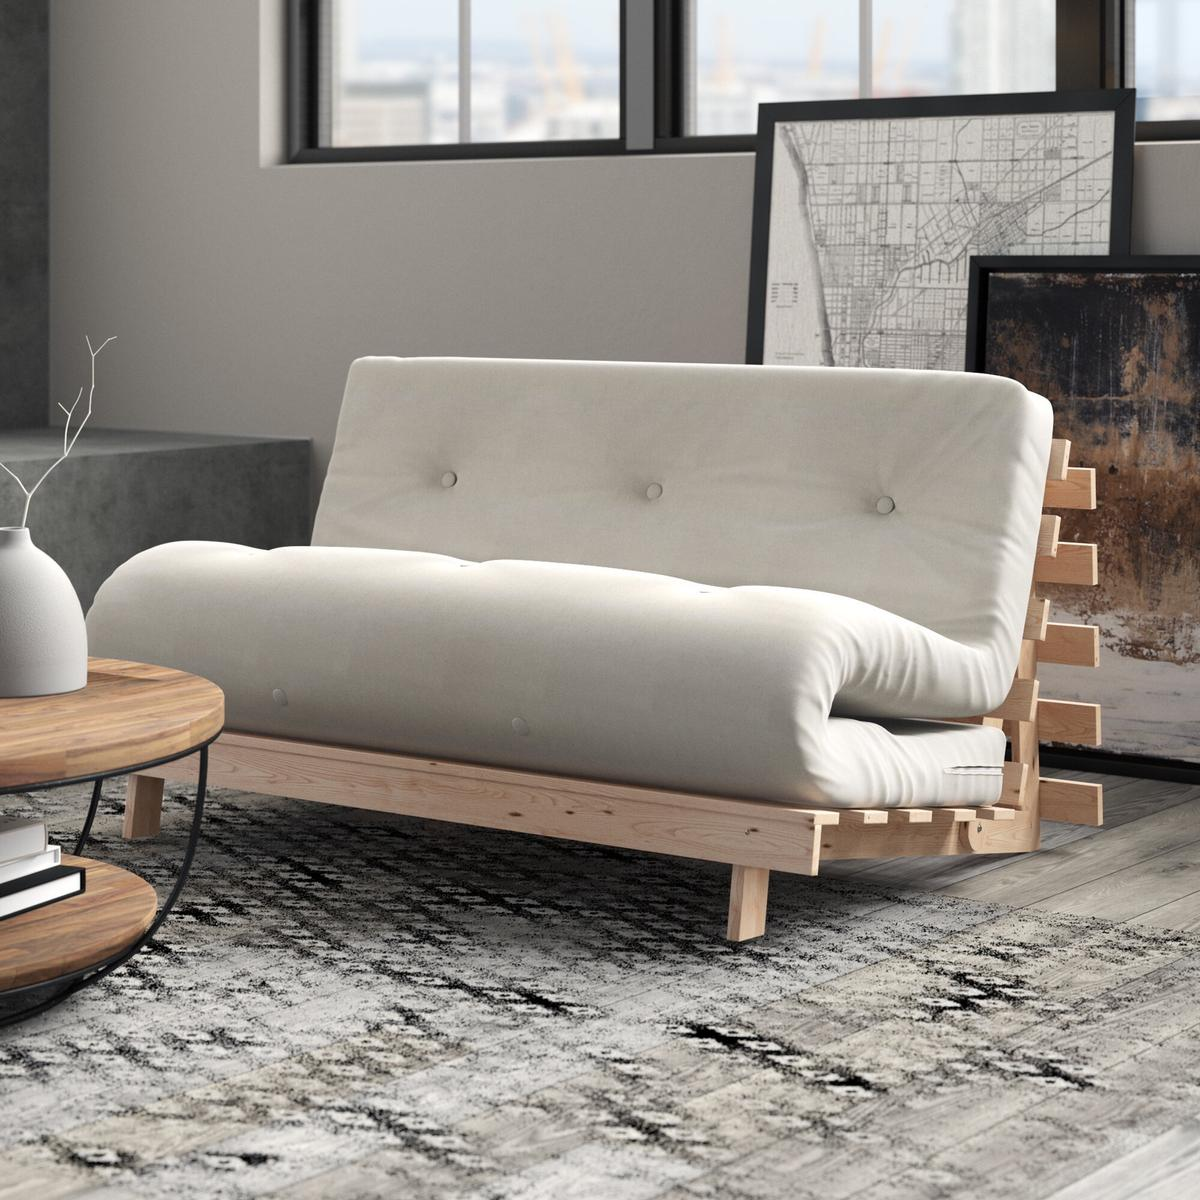 Futon Double Sofa Day Bed In Sw6